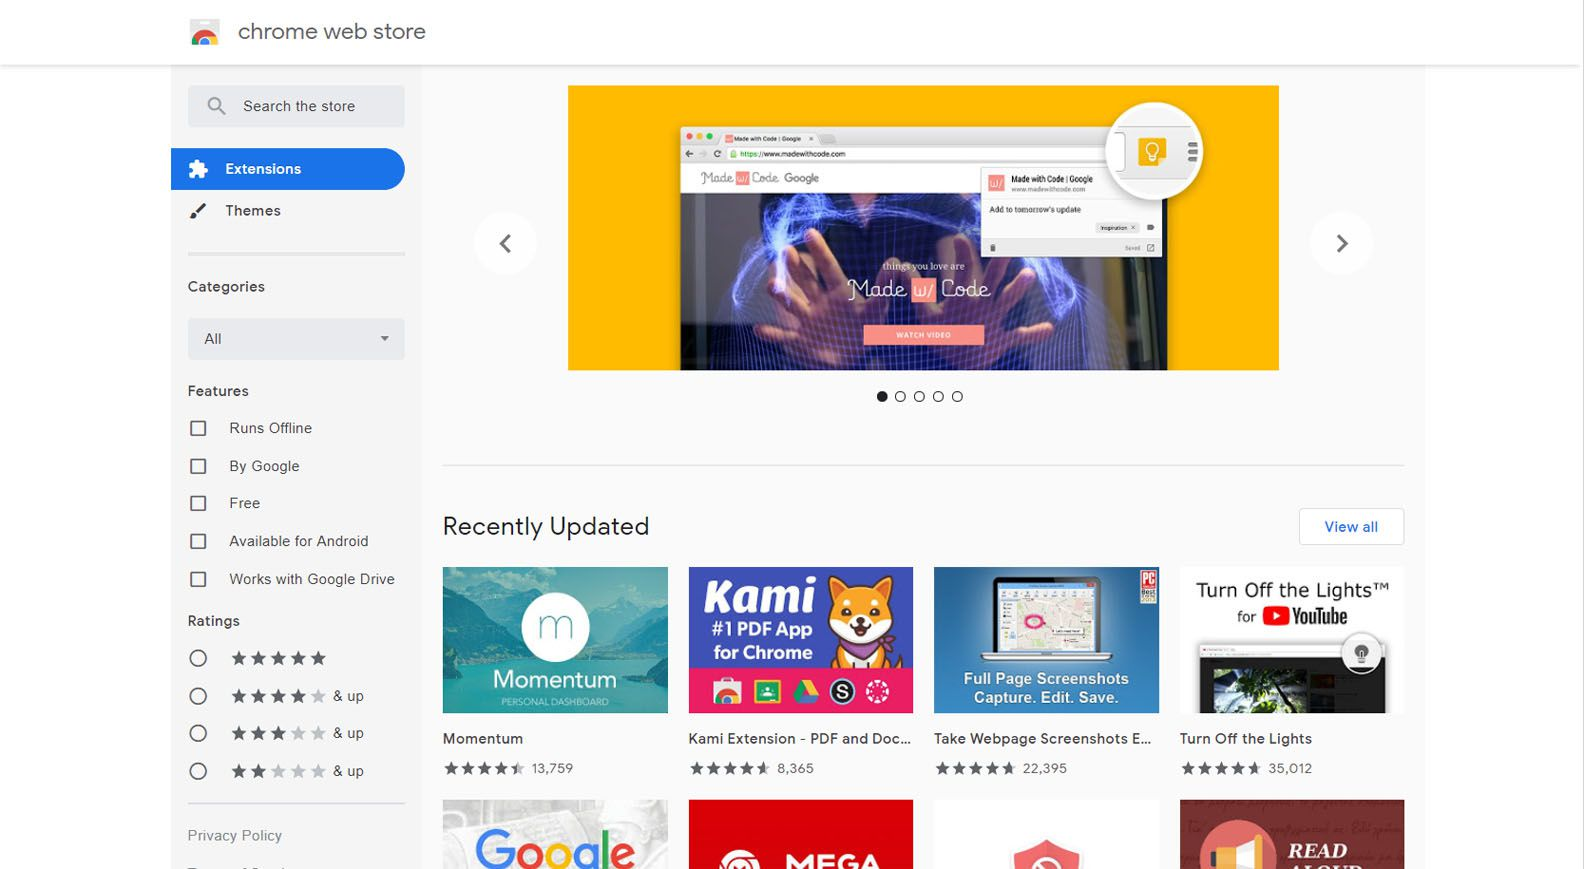 Home page of the Chrome Web Store